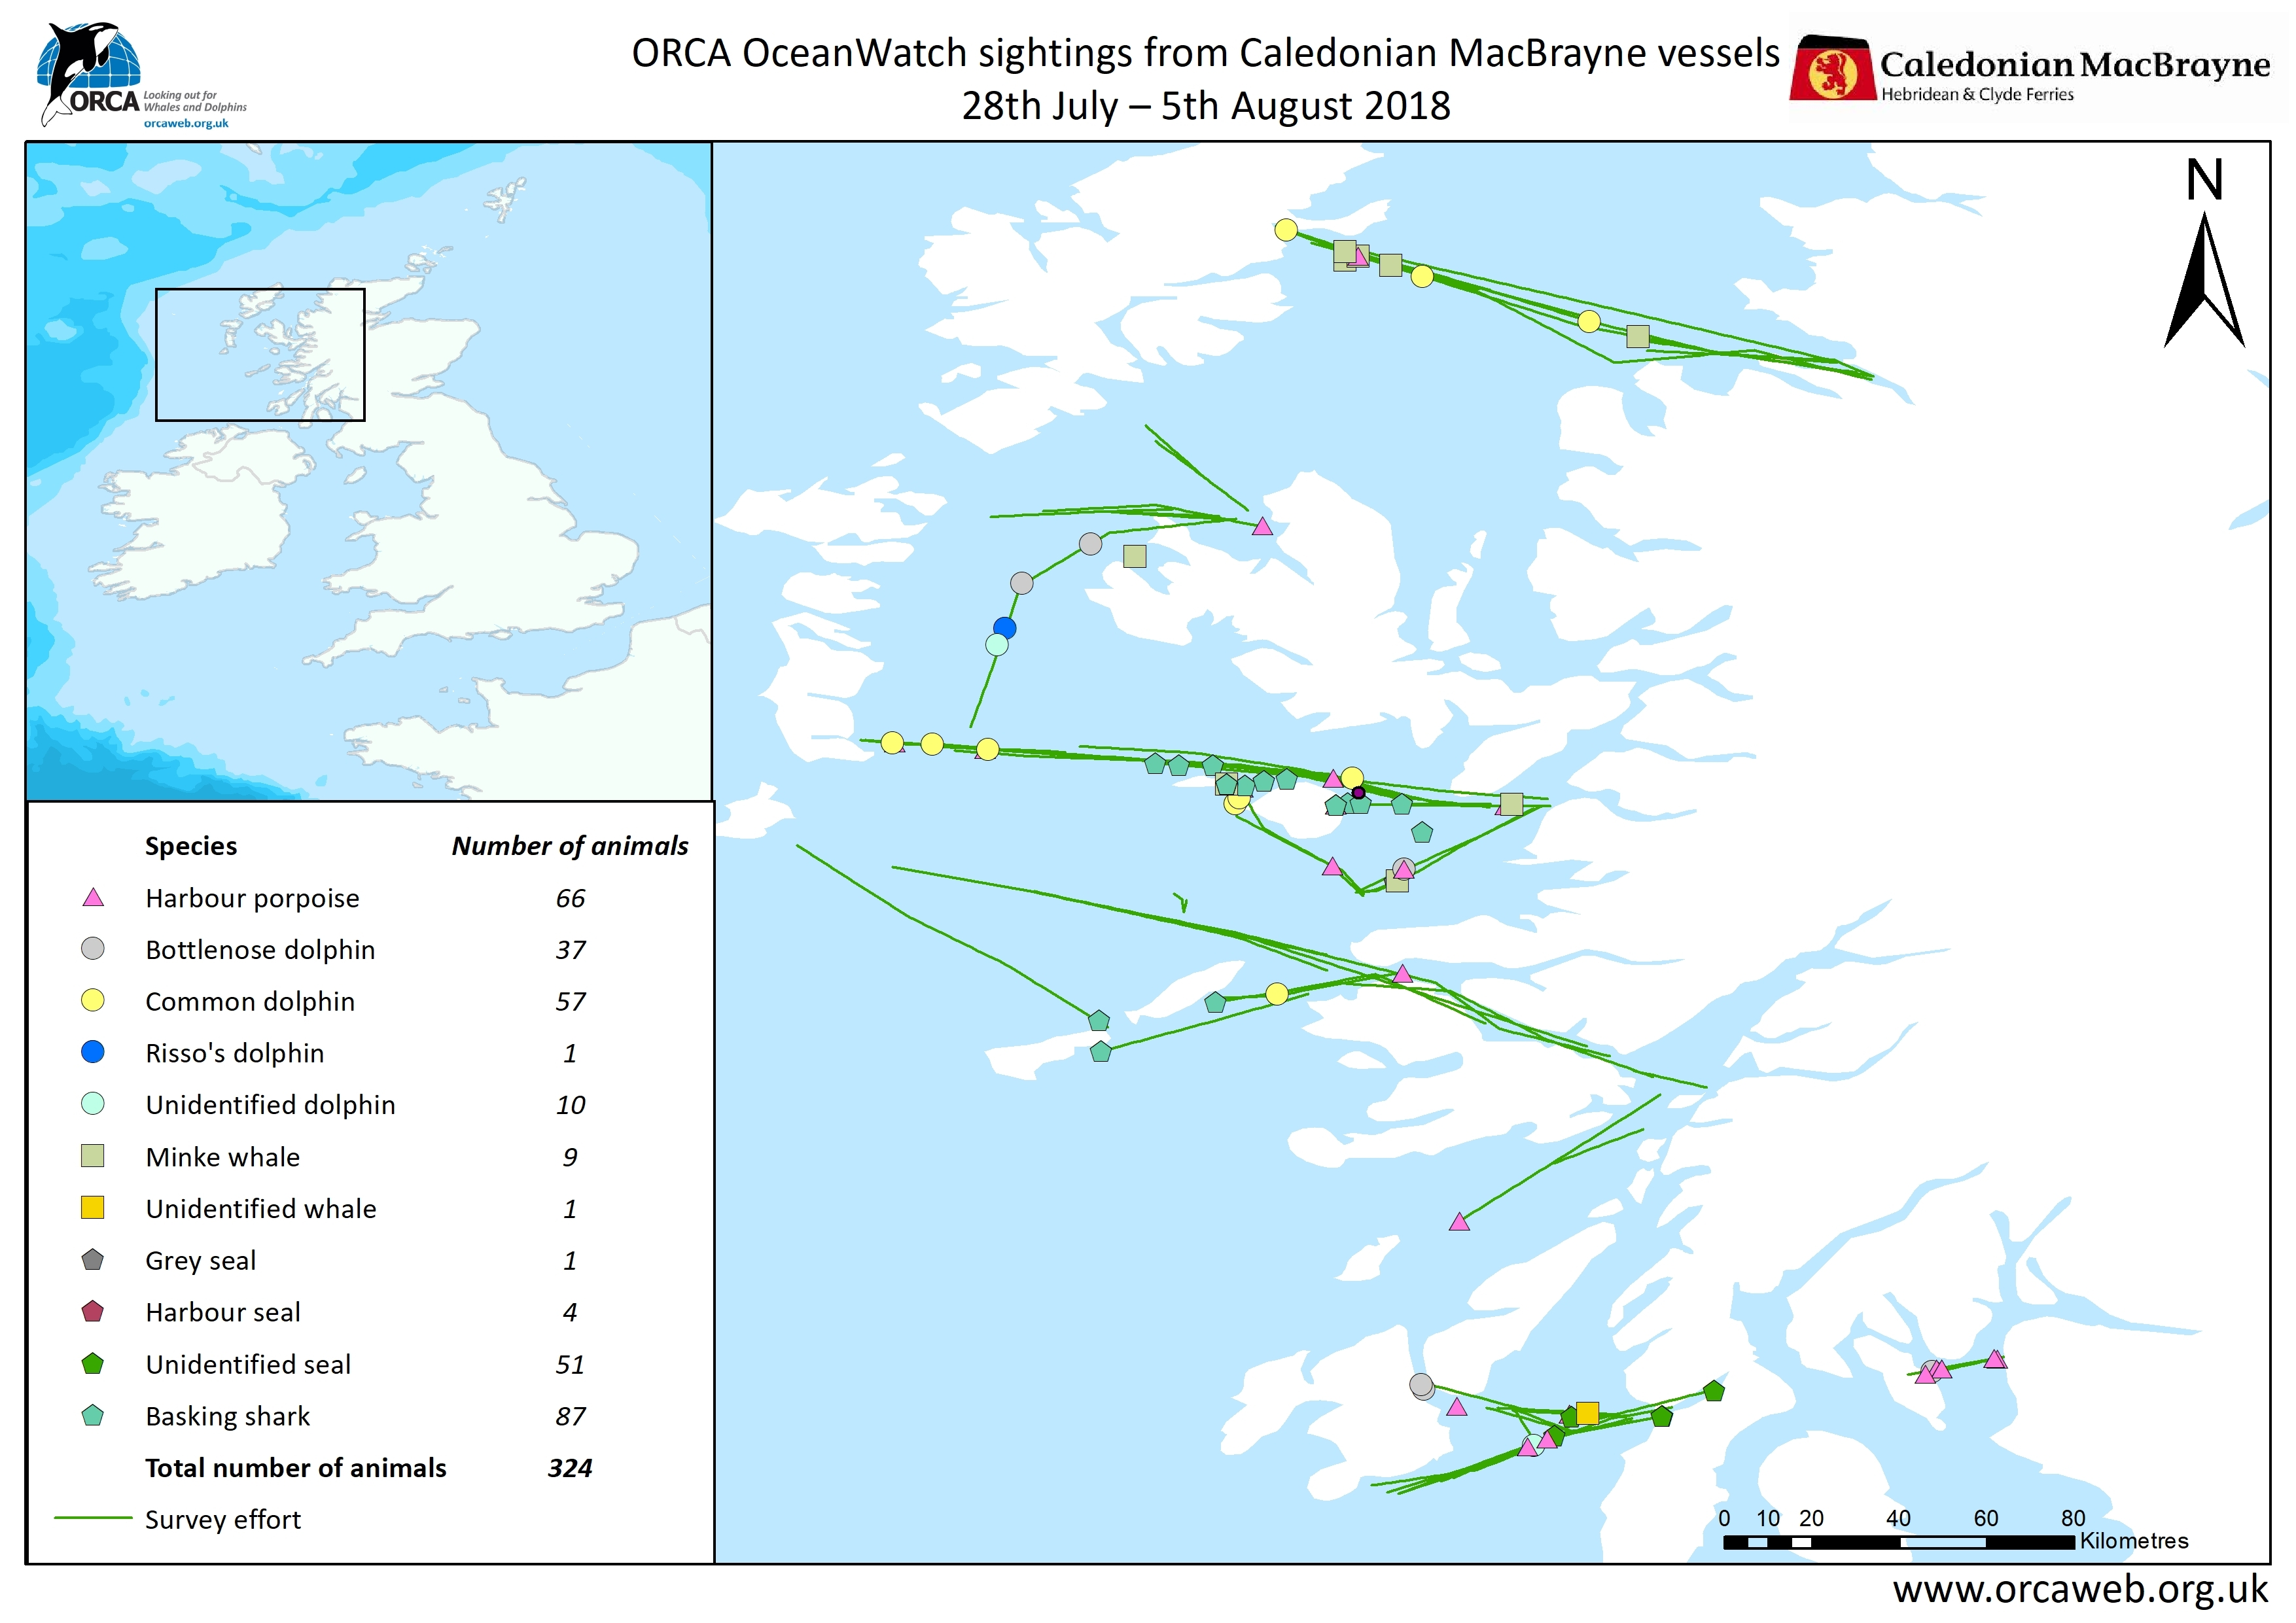 ORCA Oceanwatch 2018 Calmac Map